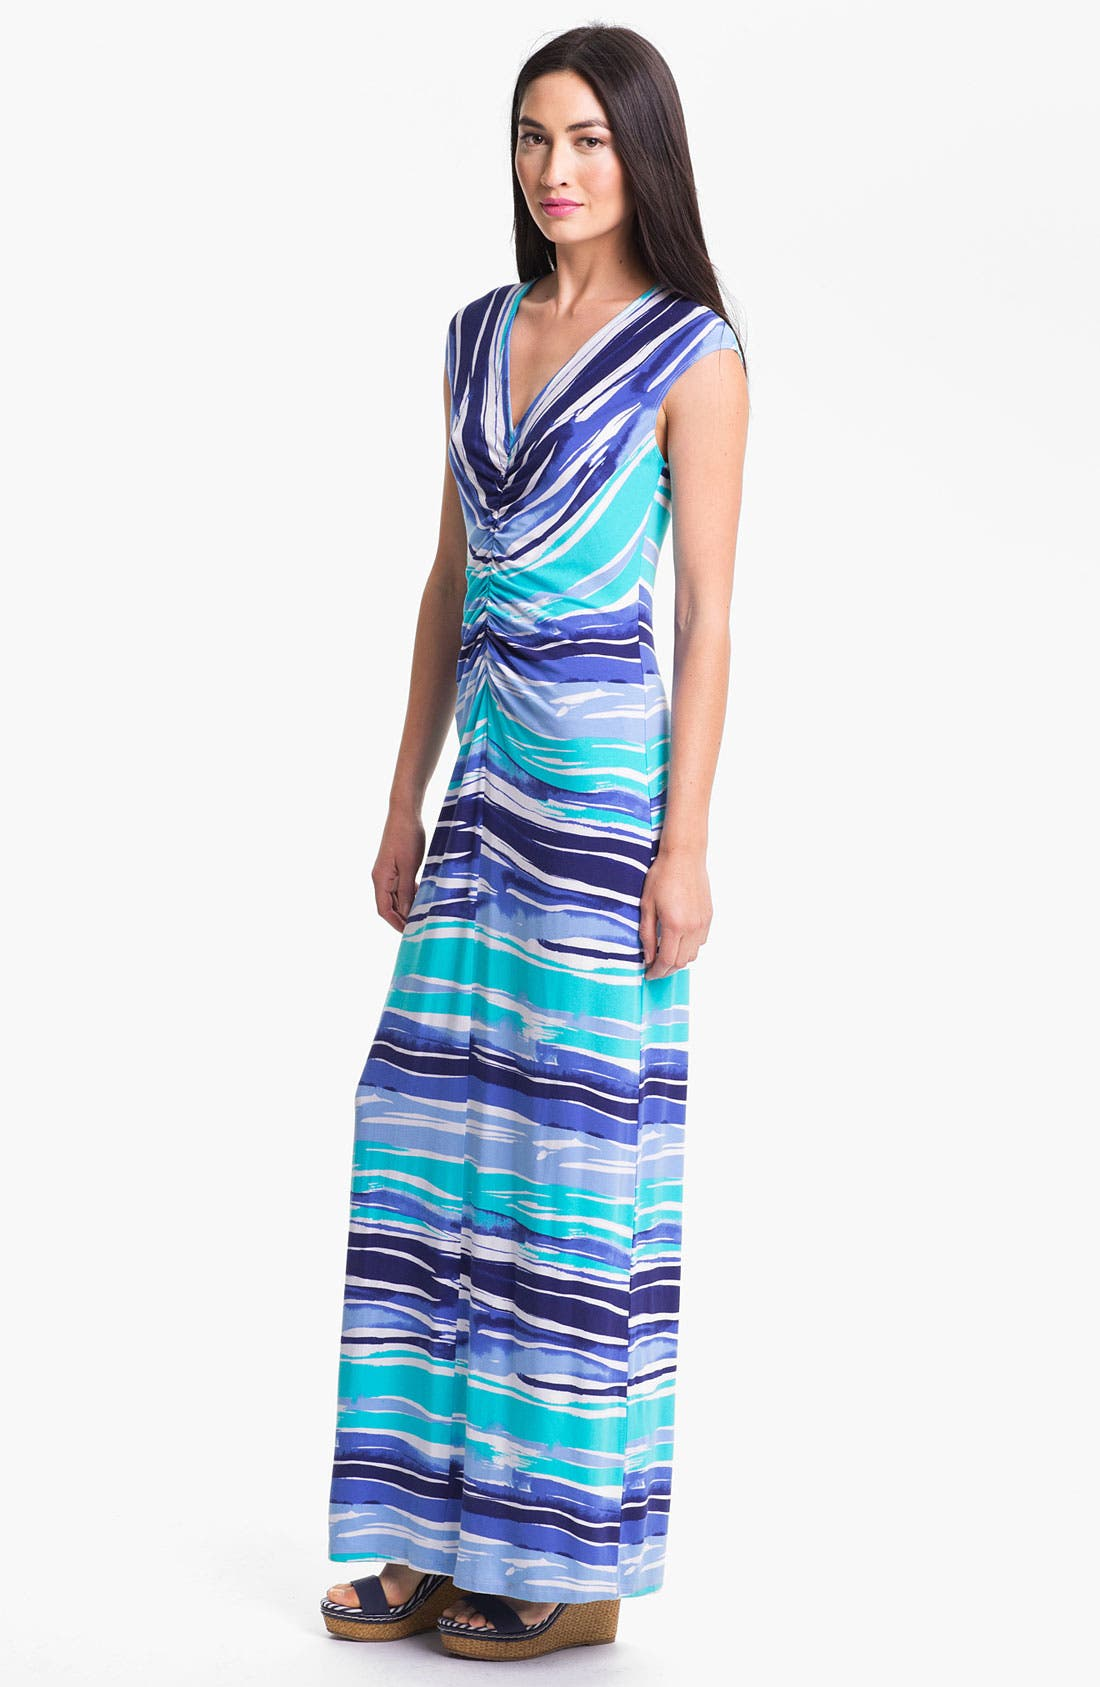 'Rising Tide' Maxi Dress,                             Main thumbnail 1, color,                             Blue Atoll